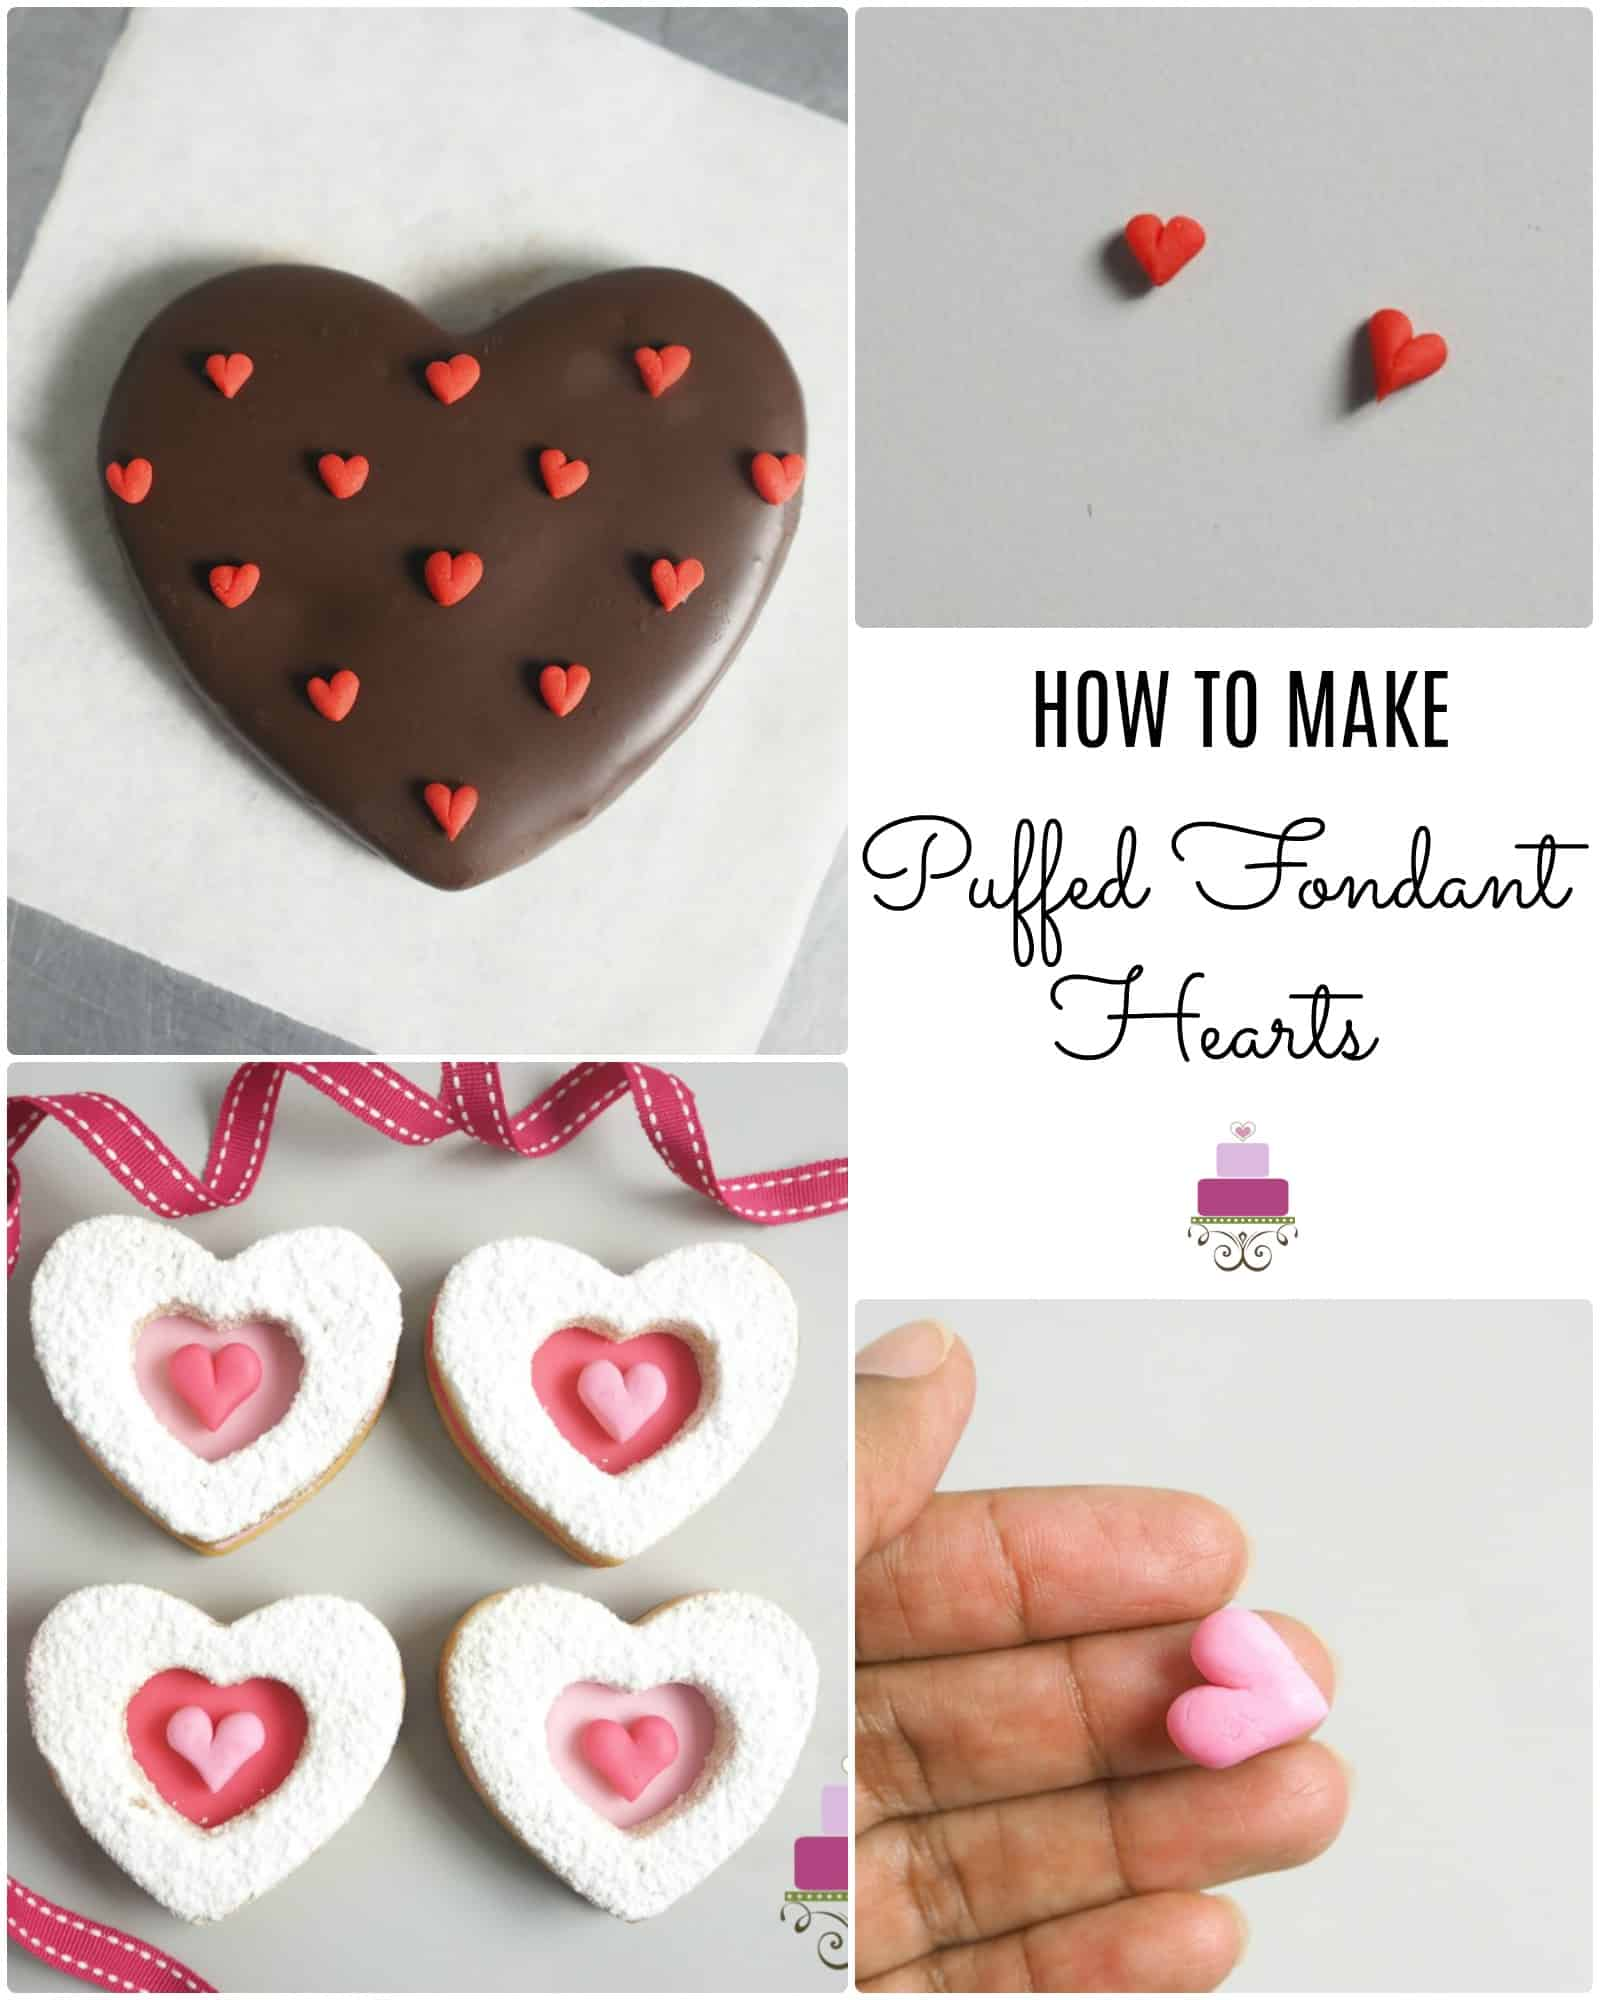 Poster making fondant hearts without cutters